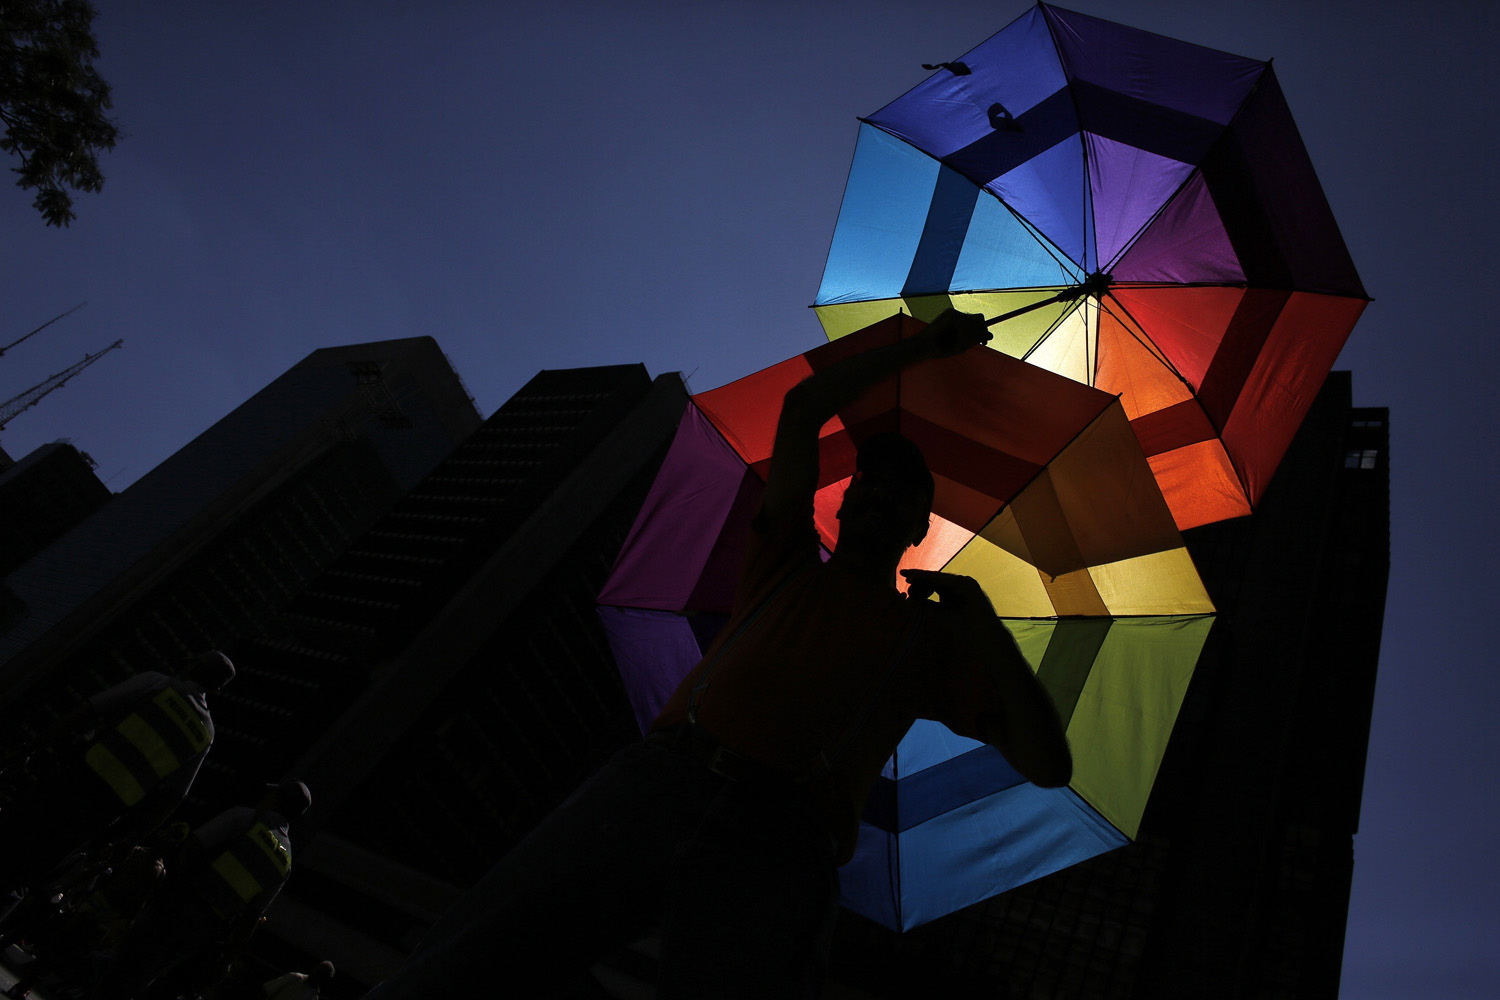 May 4, 2014.  A reveller holds up rainbow colored umbrellas during the 18th Gay Pride Parade in Avenida Paulista in Sao Paulo.